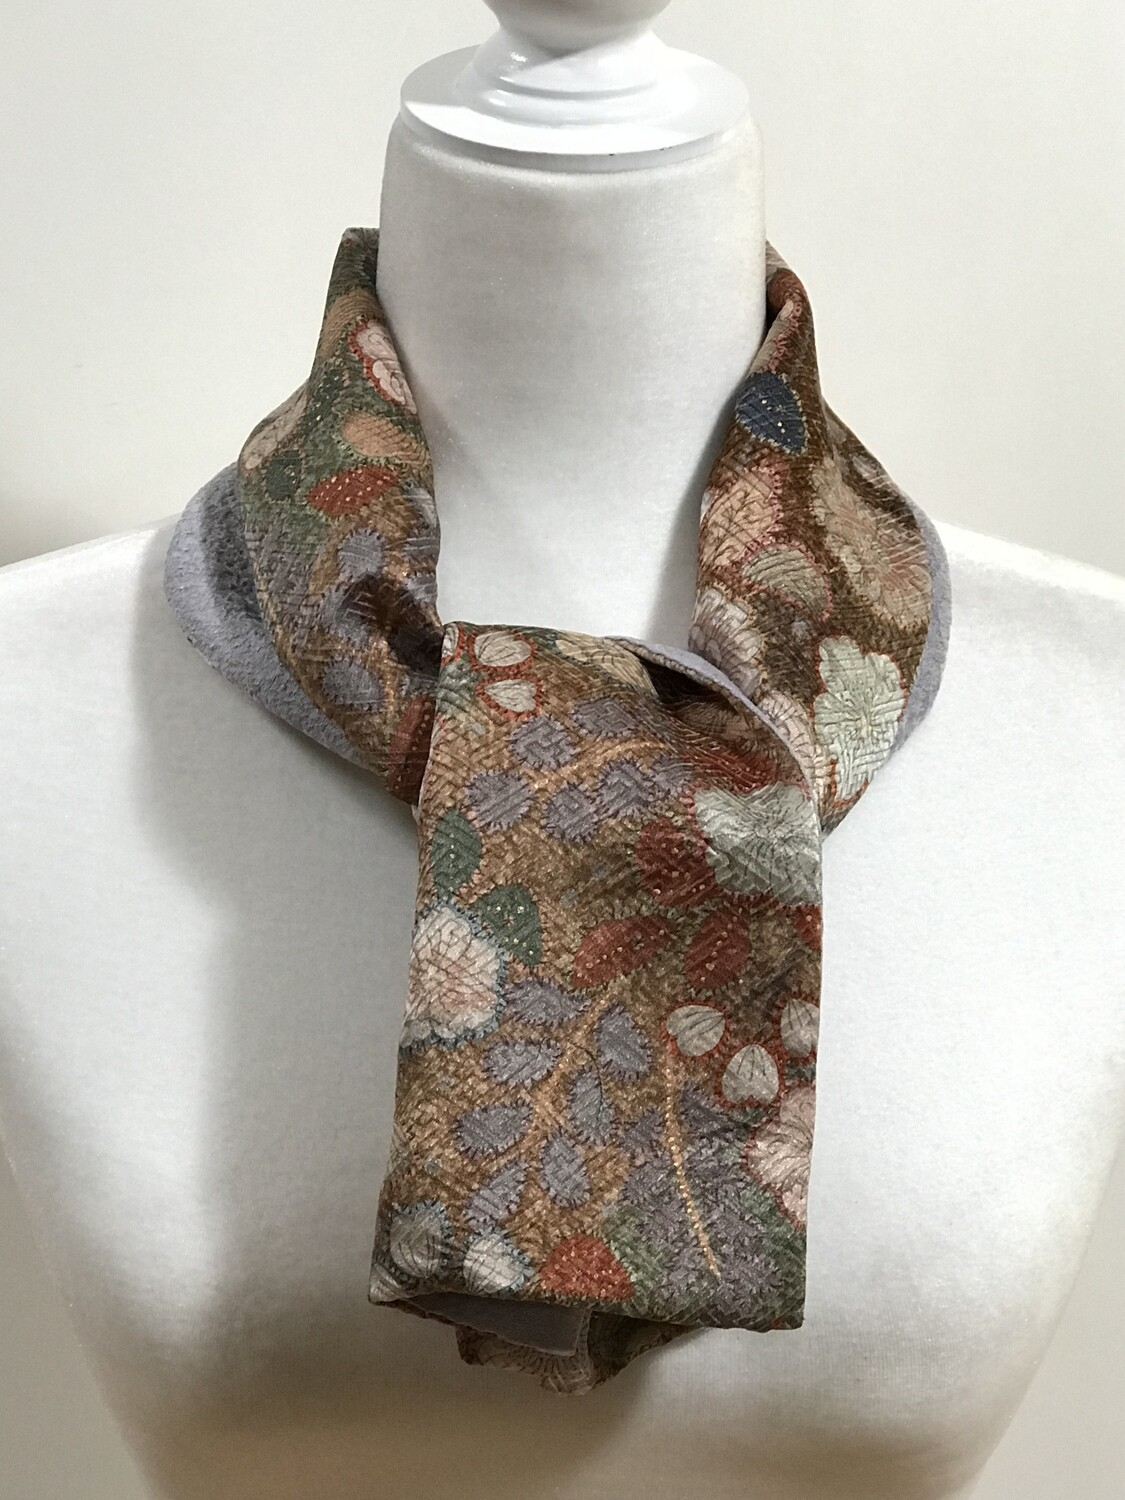 Scarf 6.5 x 40.5 in